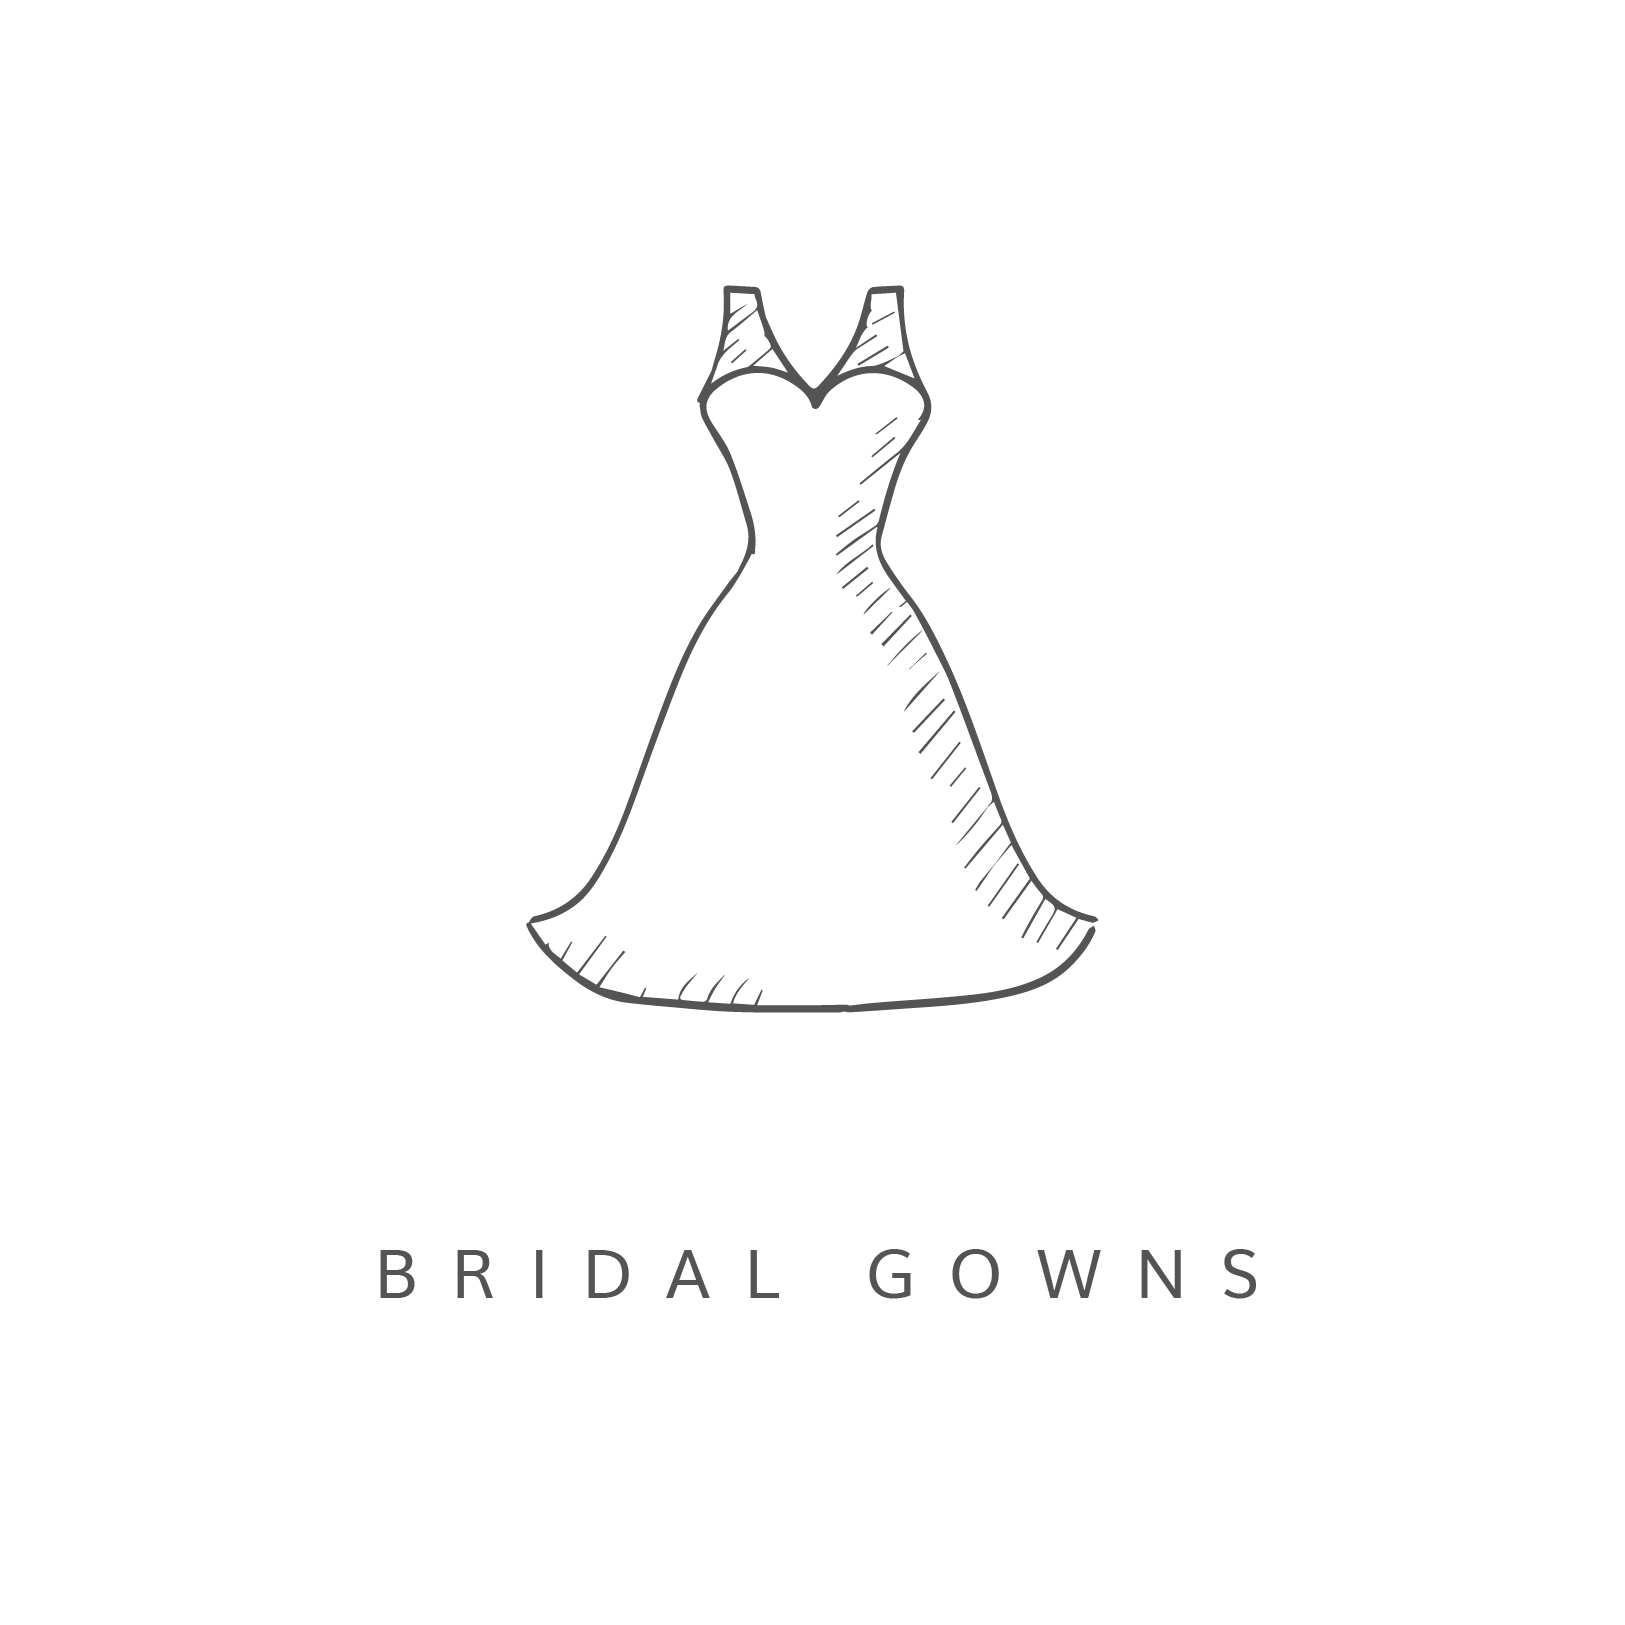 bridalgowns-01.png